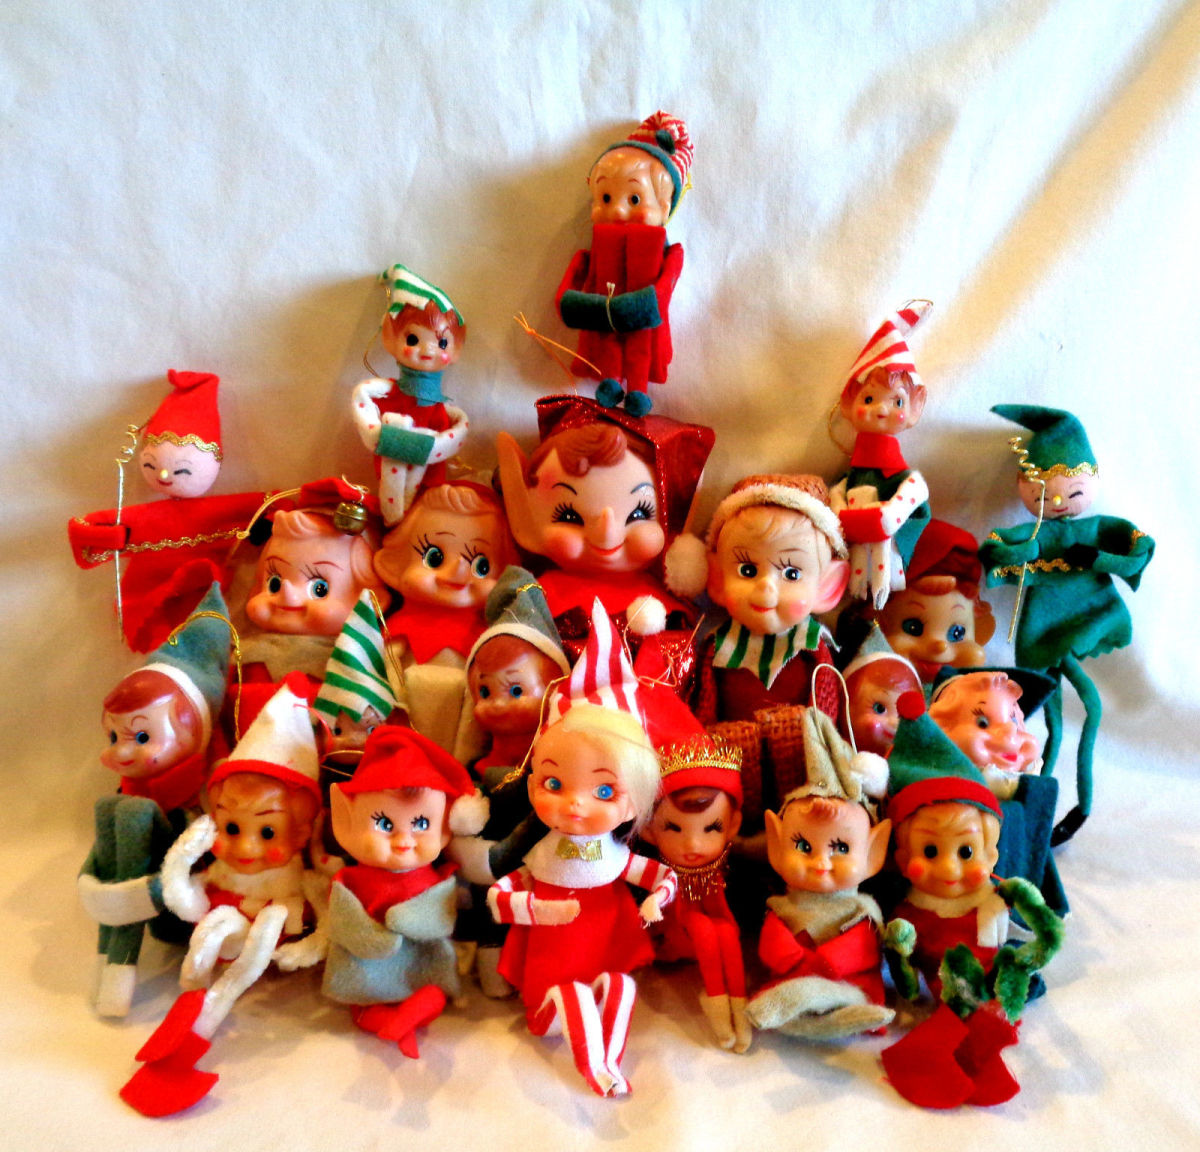 Many of the now popular vintage Knee Huger Elf's were made by Napco,and Yuletide Company of Japan throughout the 1950s and 1960s. They did an excellent job with their Elf's and became very popular in the United States and Canada during this era.